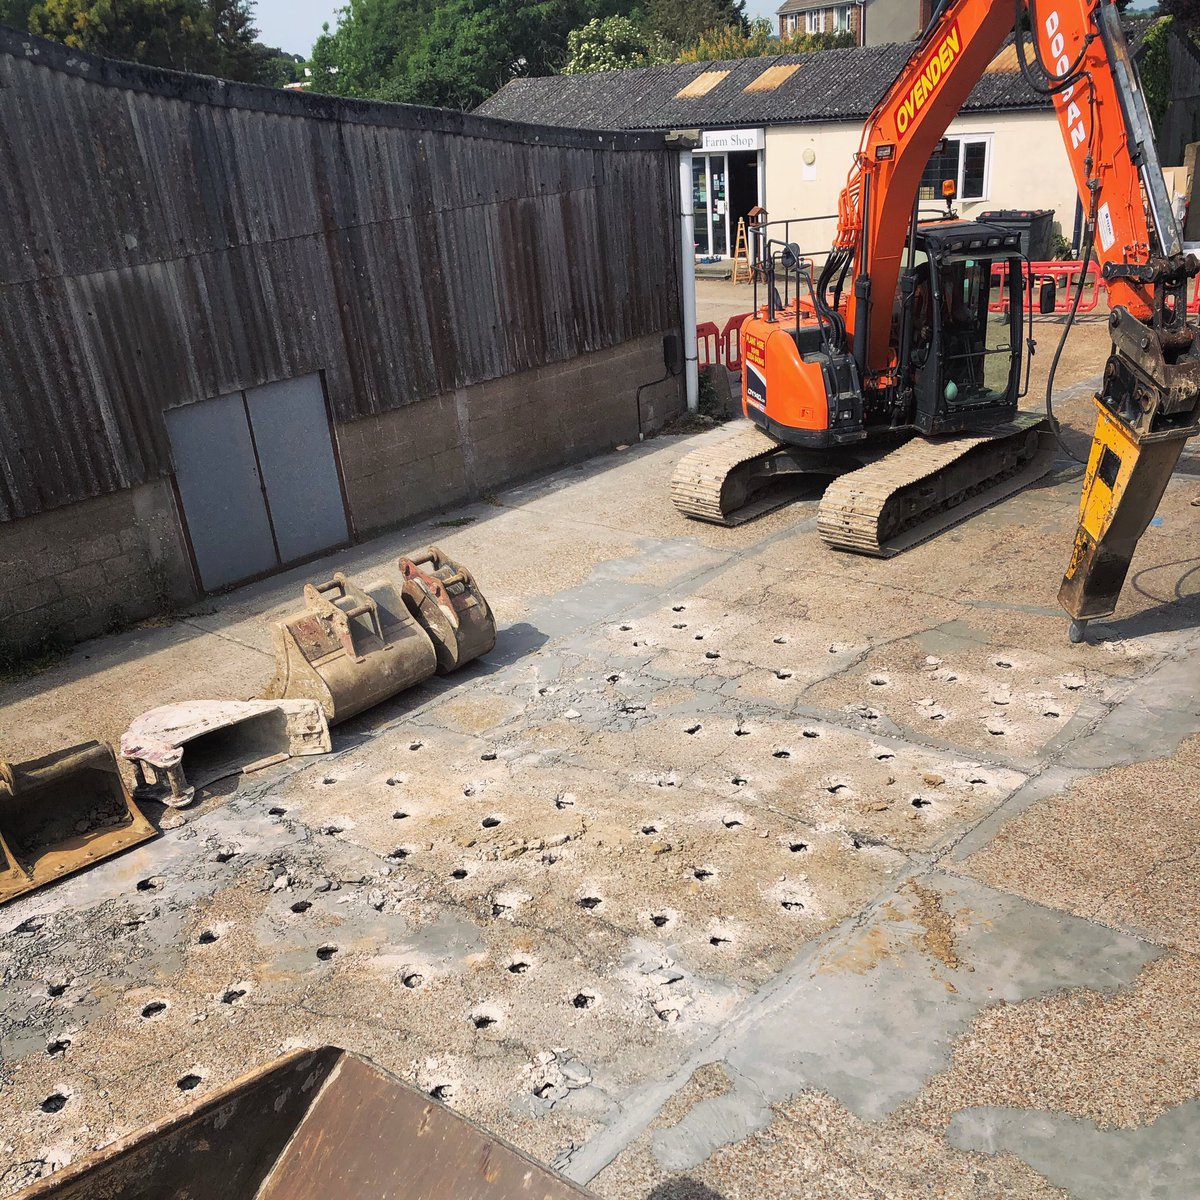 It's been a noisy morning at Kingsdown HQ. Lockdown has provided some of us time and space to do improvements to our homes and workplaces. Today we begin replacing all concreted surfaces in our loading bays before our daily transport returns to some normality.  #wednesdaymorning https://t.co/rxuuu794wO